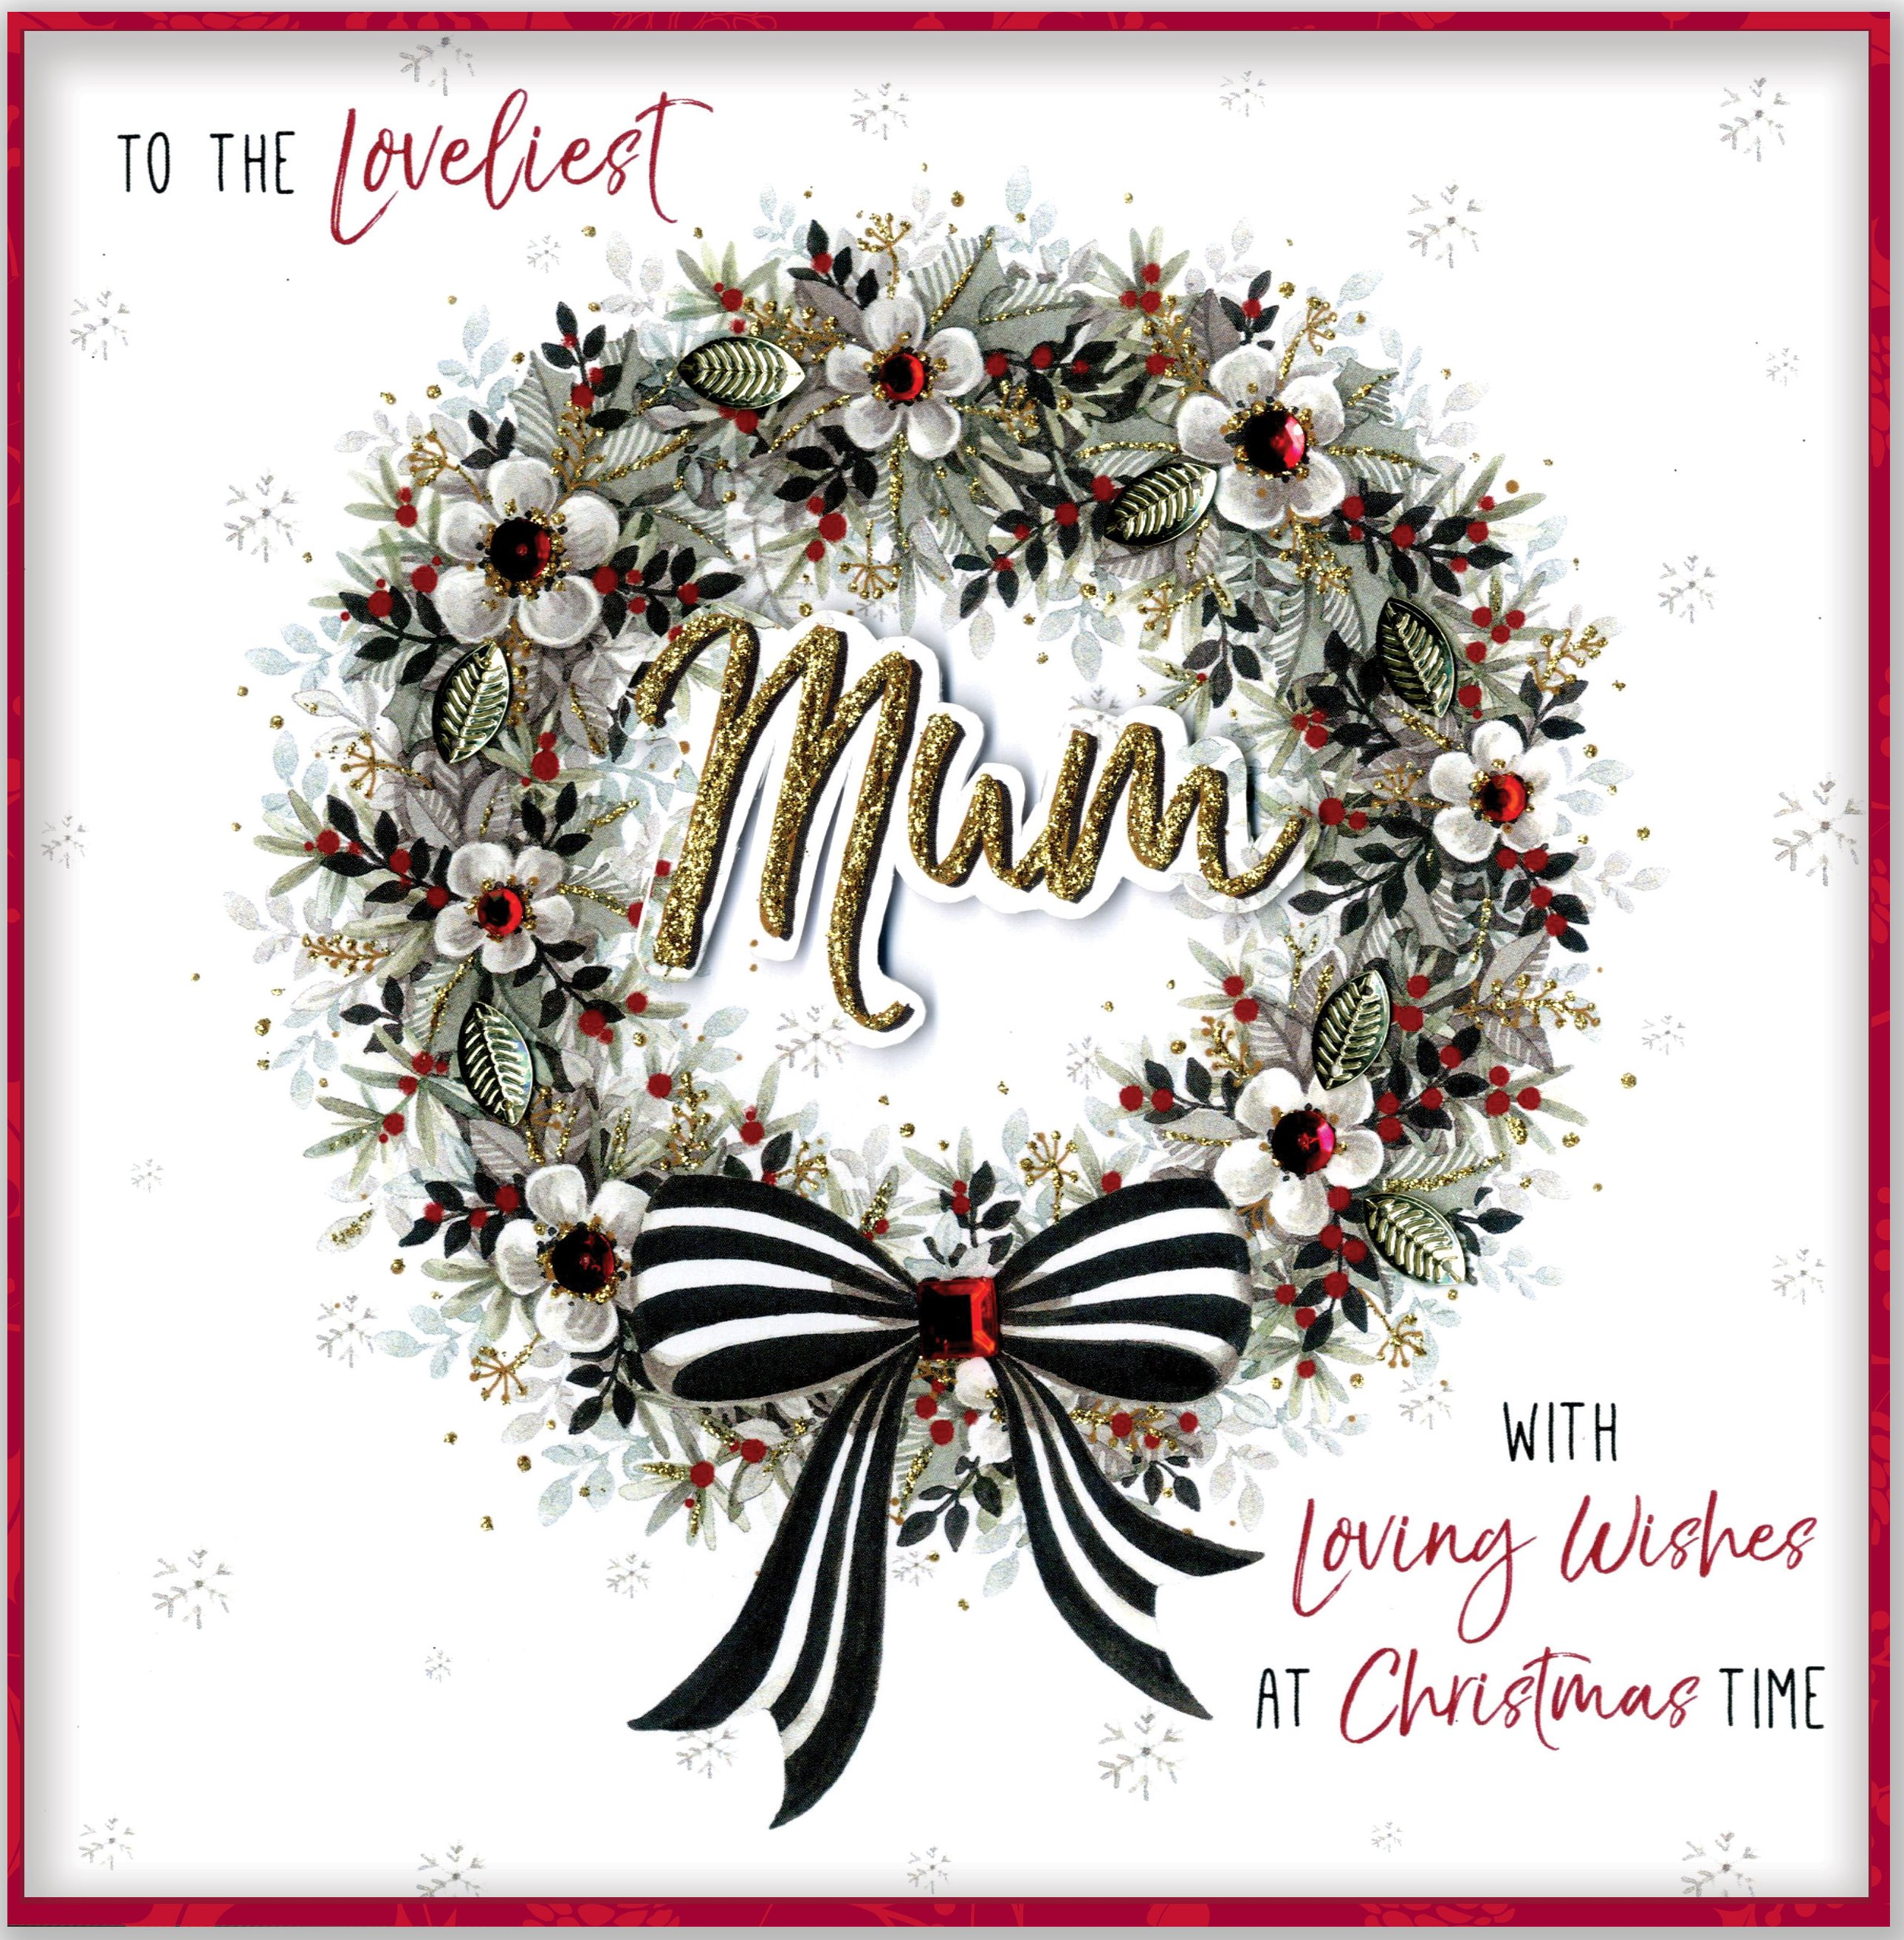 Handmade Christmas Card Images.Boxed Loveliest Mum Special Luxury Handmade Christmas Card